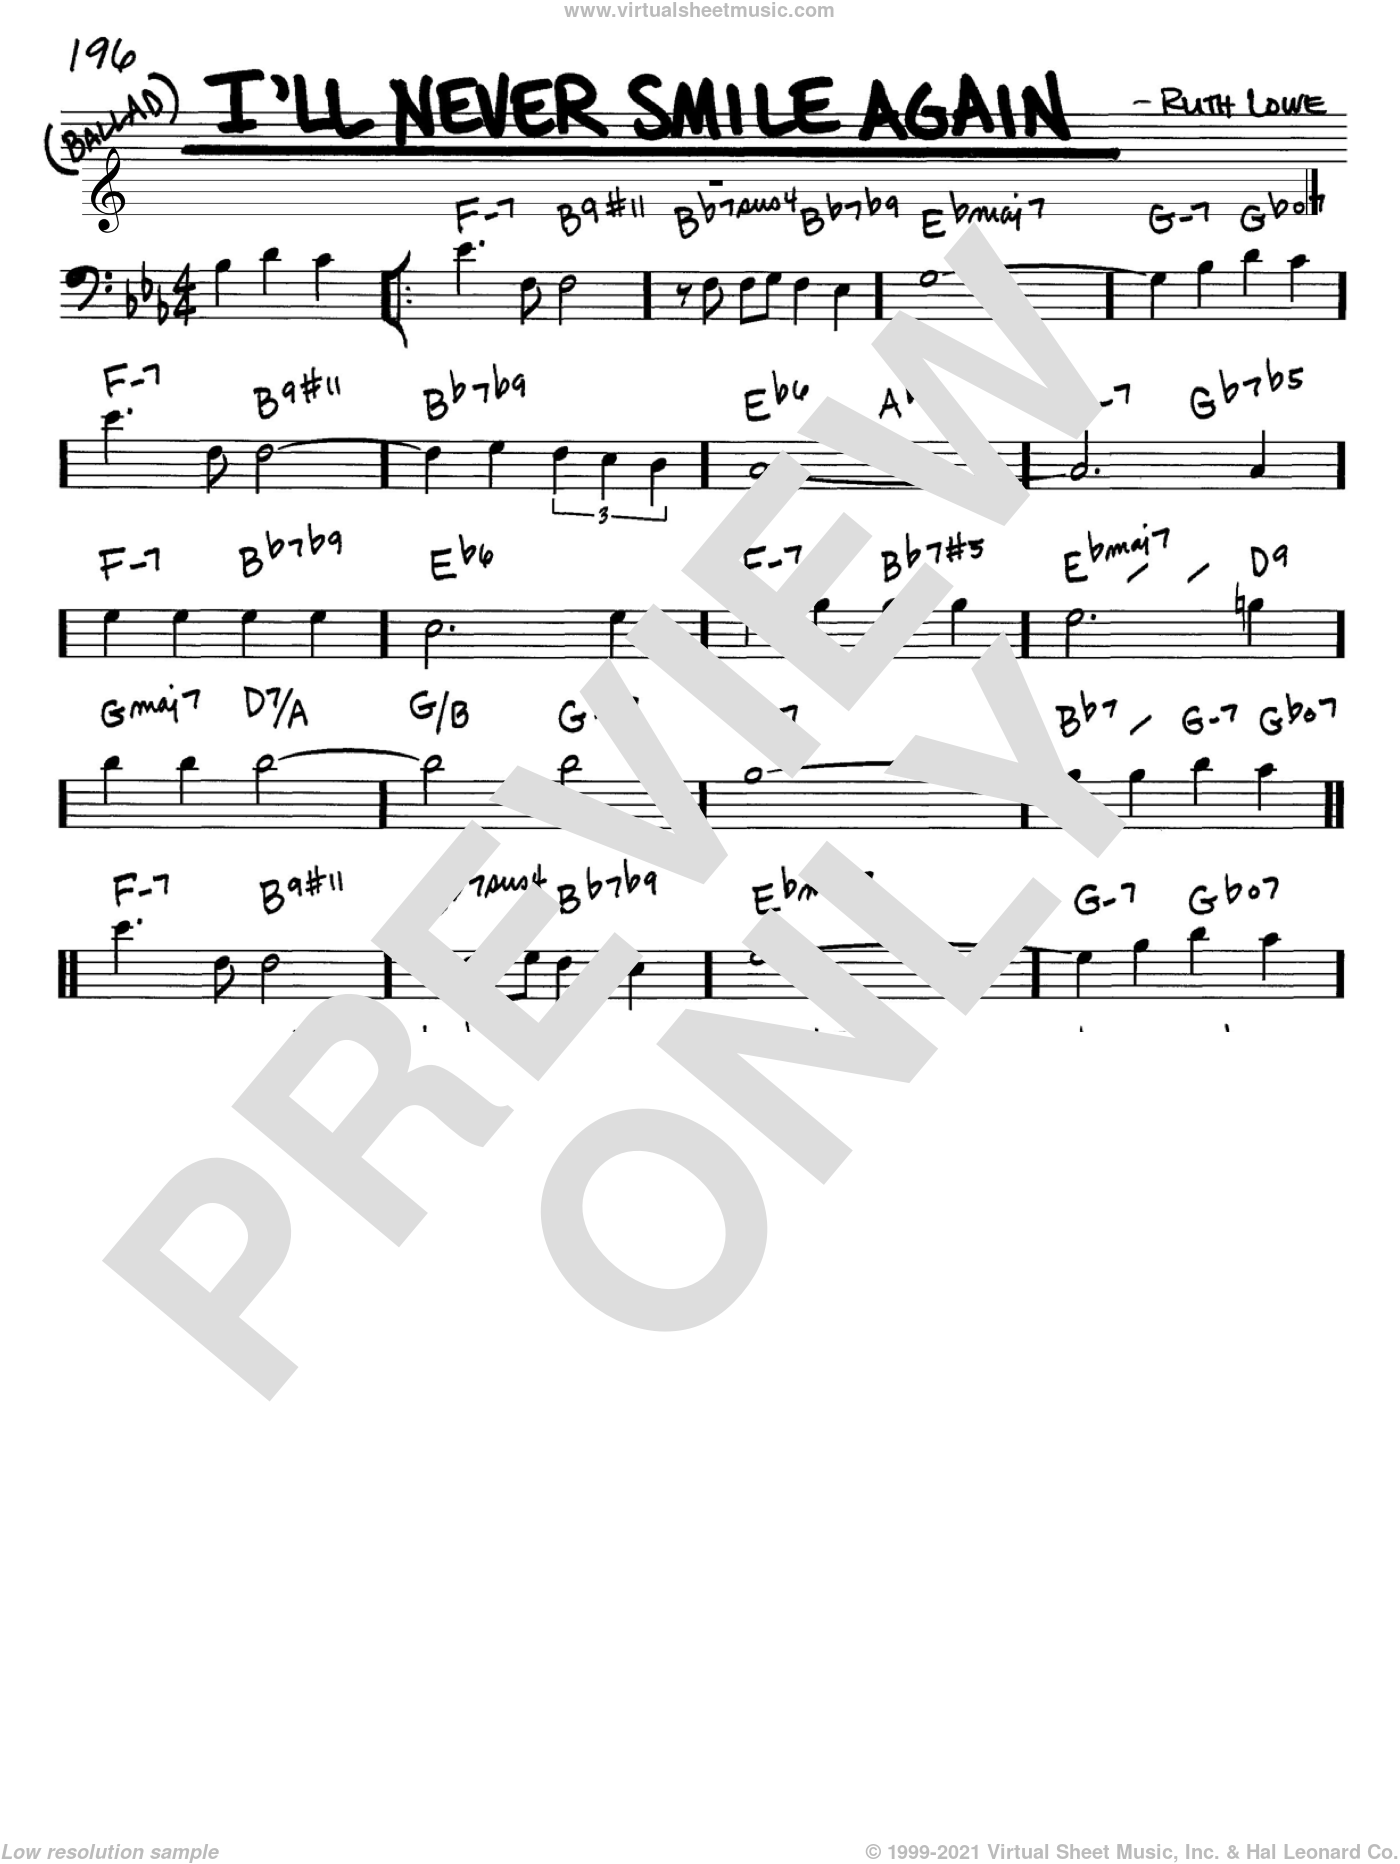 I'll Never Smile Again sheet music for voice and other instruments (Bass Clef ) by Ruth Lowe